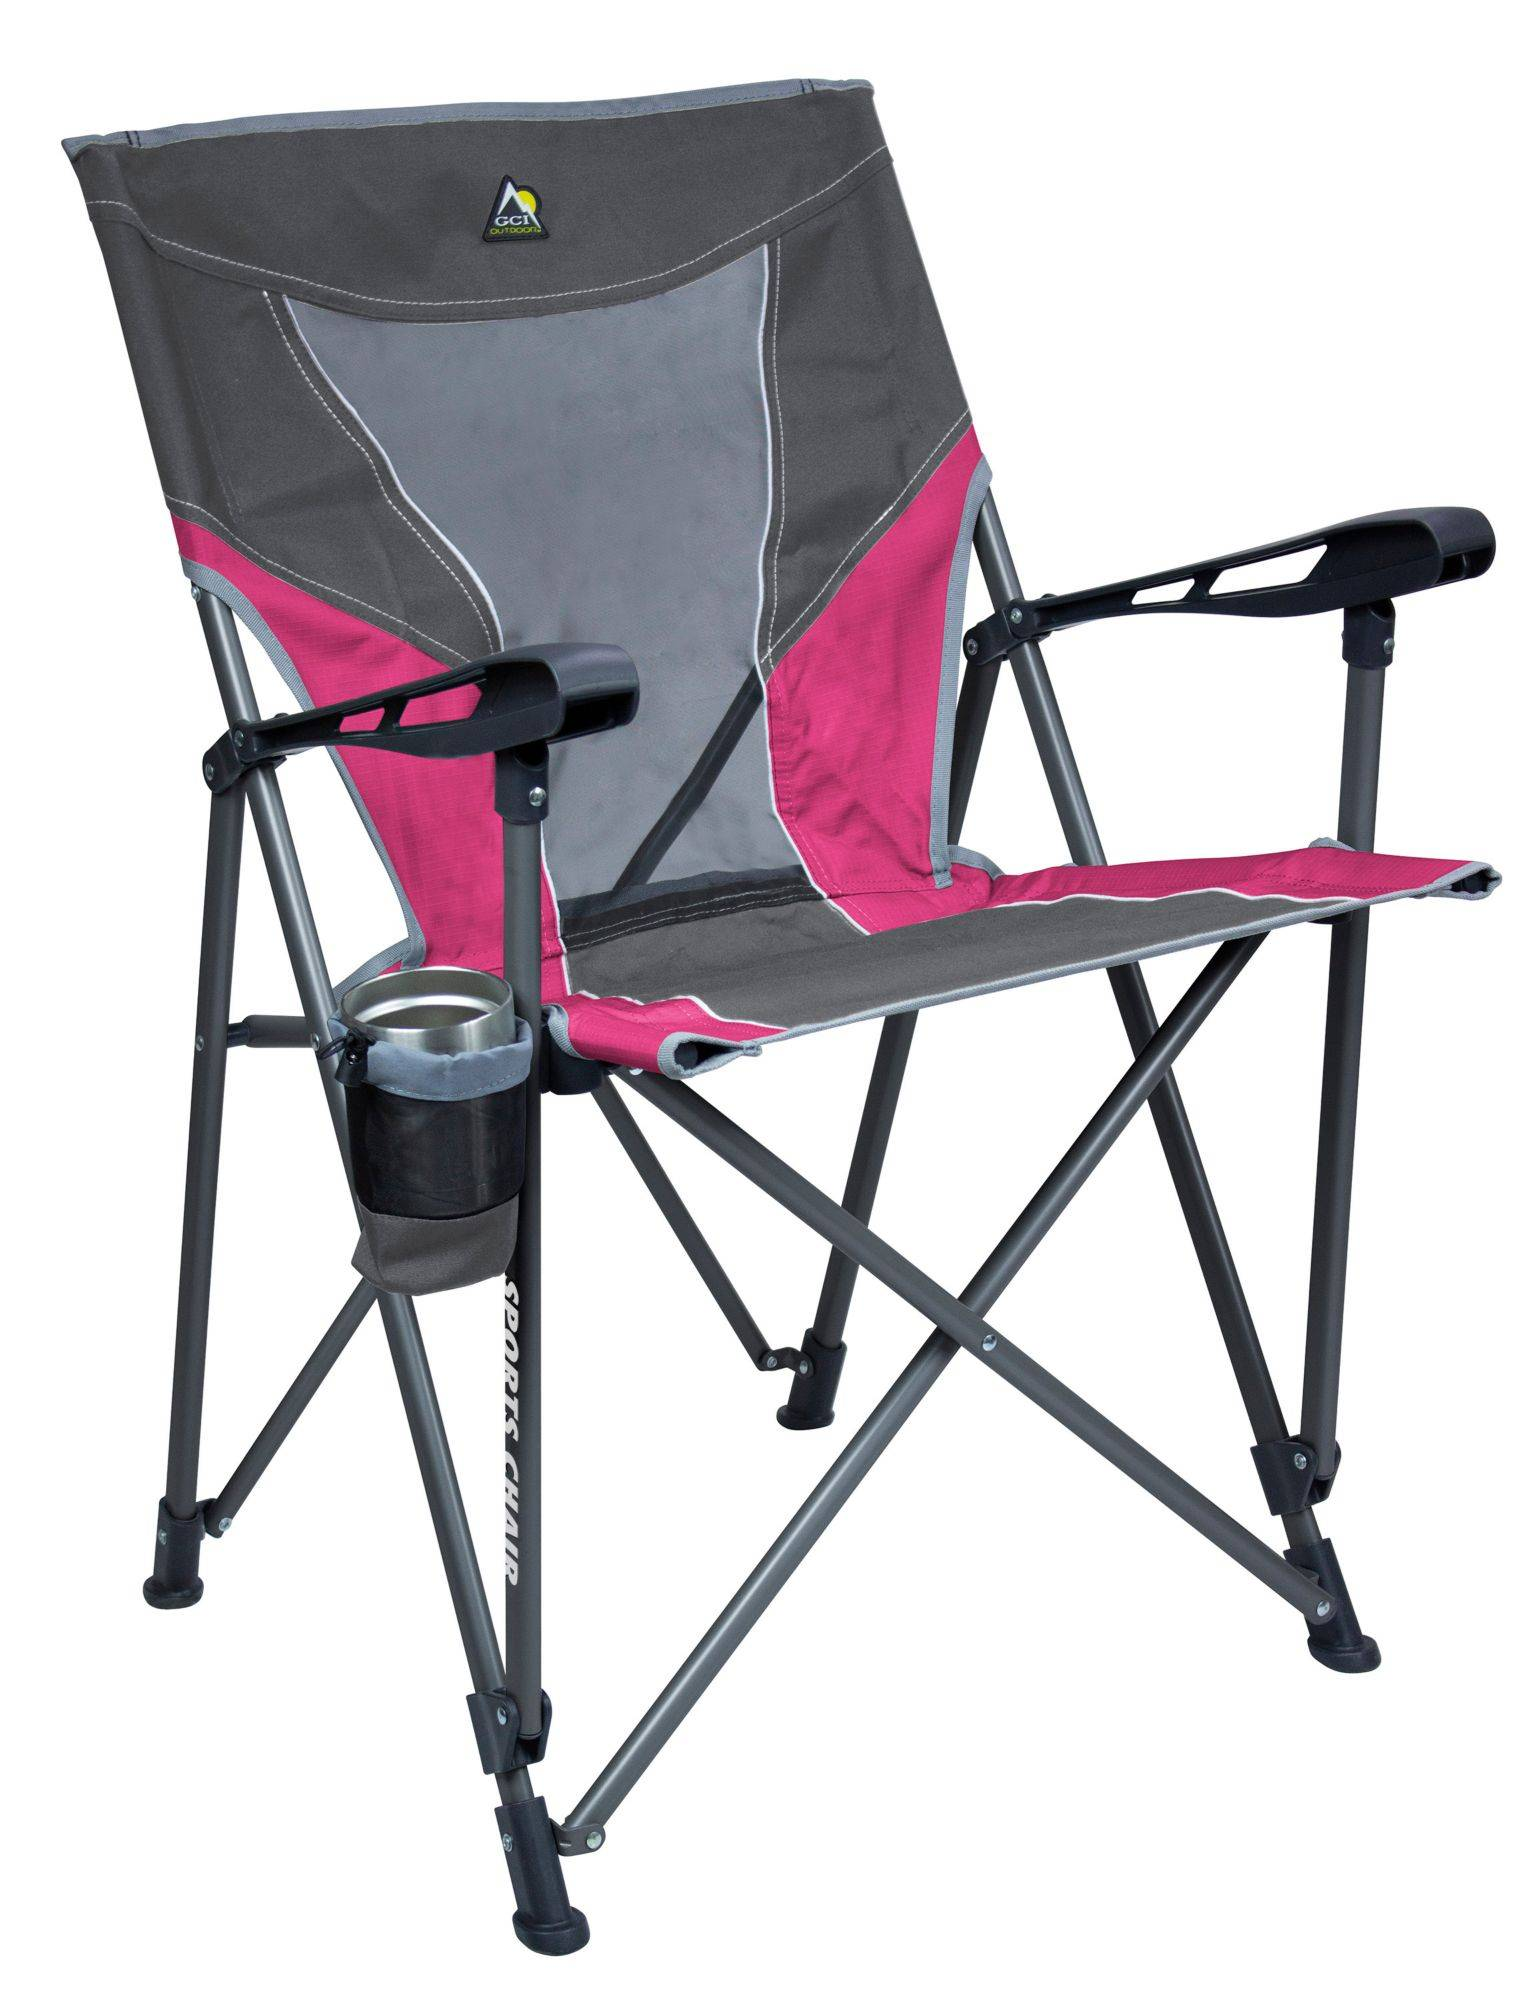 GCI Outdoor Sports Chair, Gray